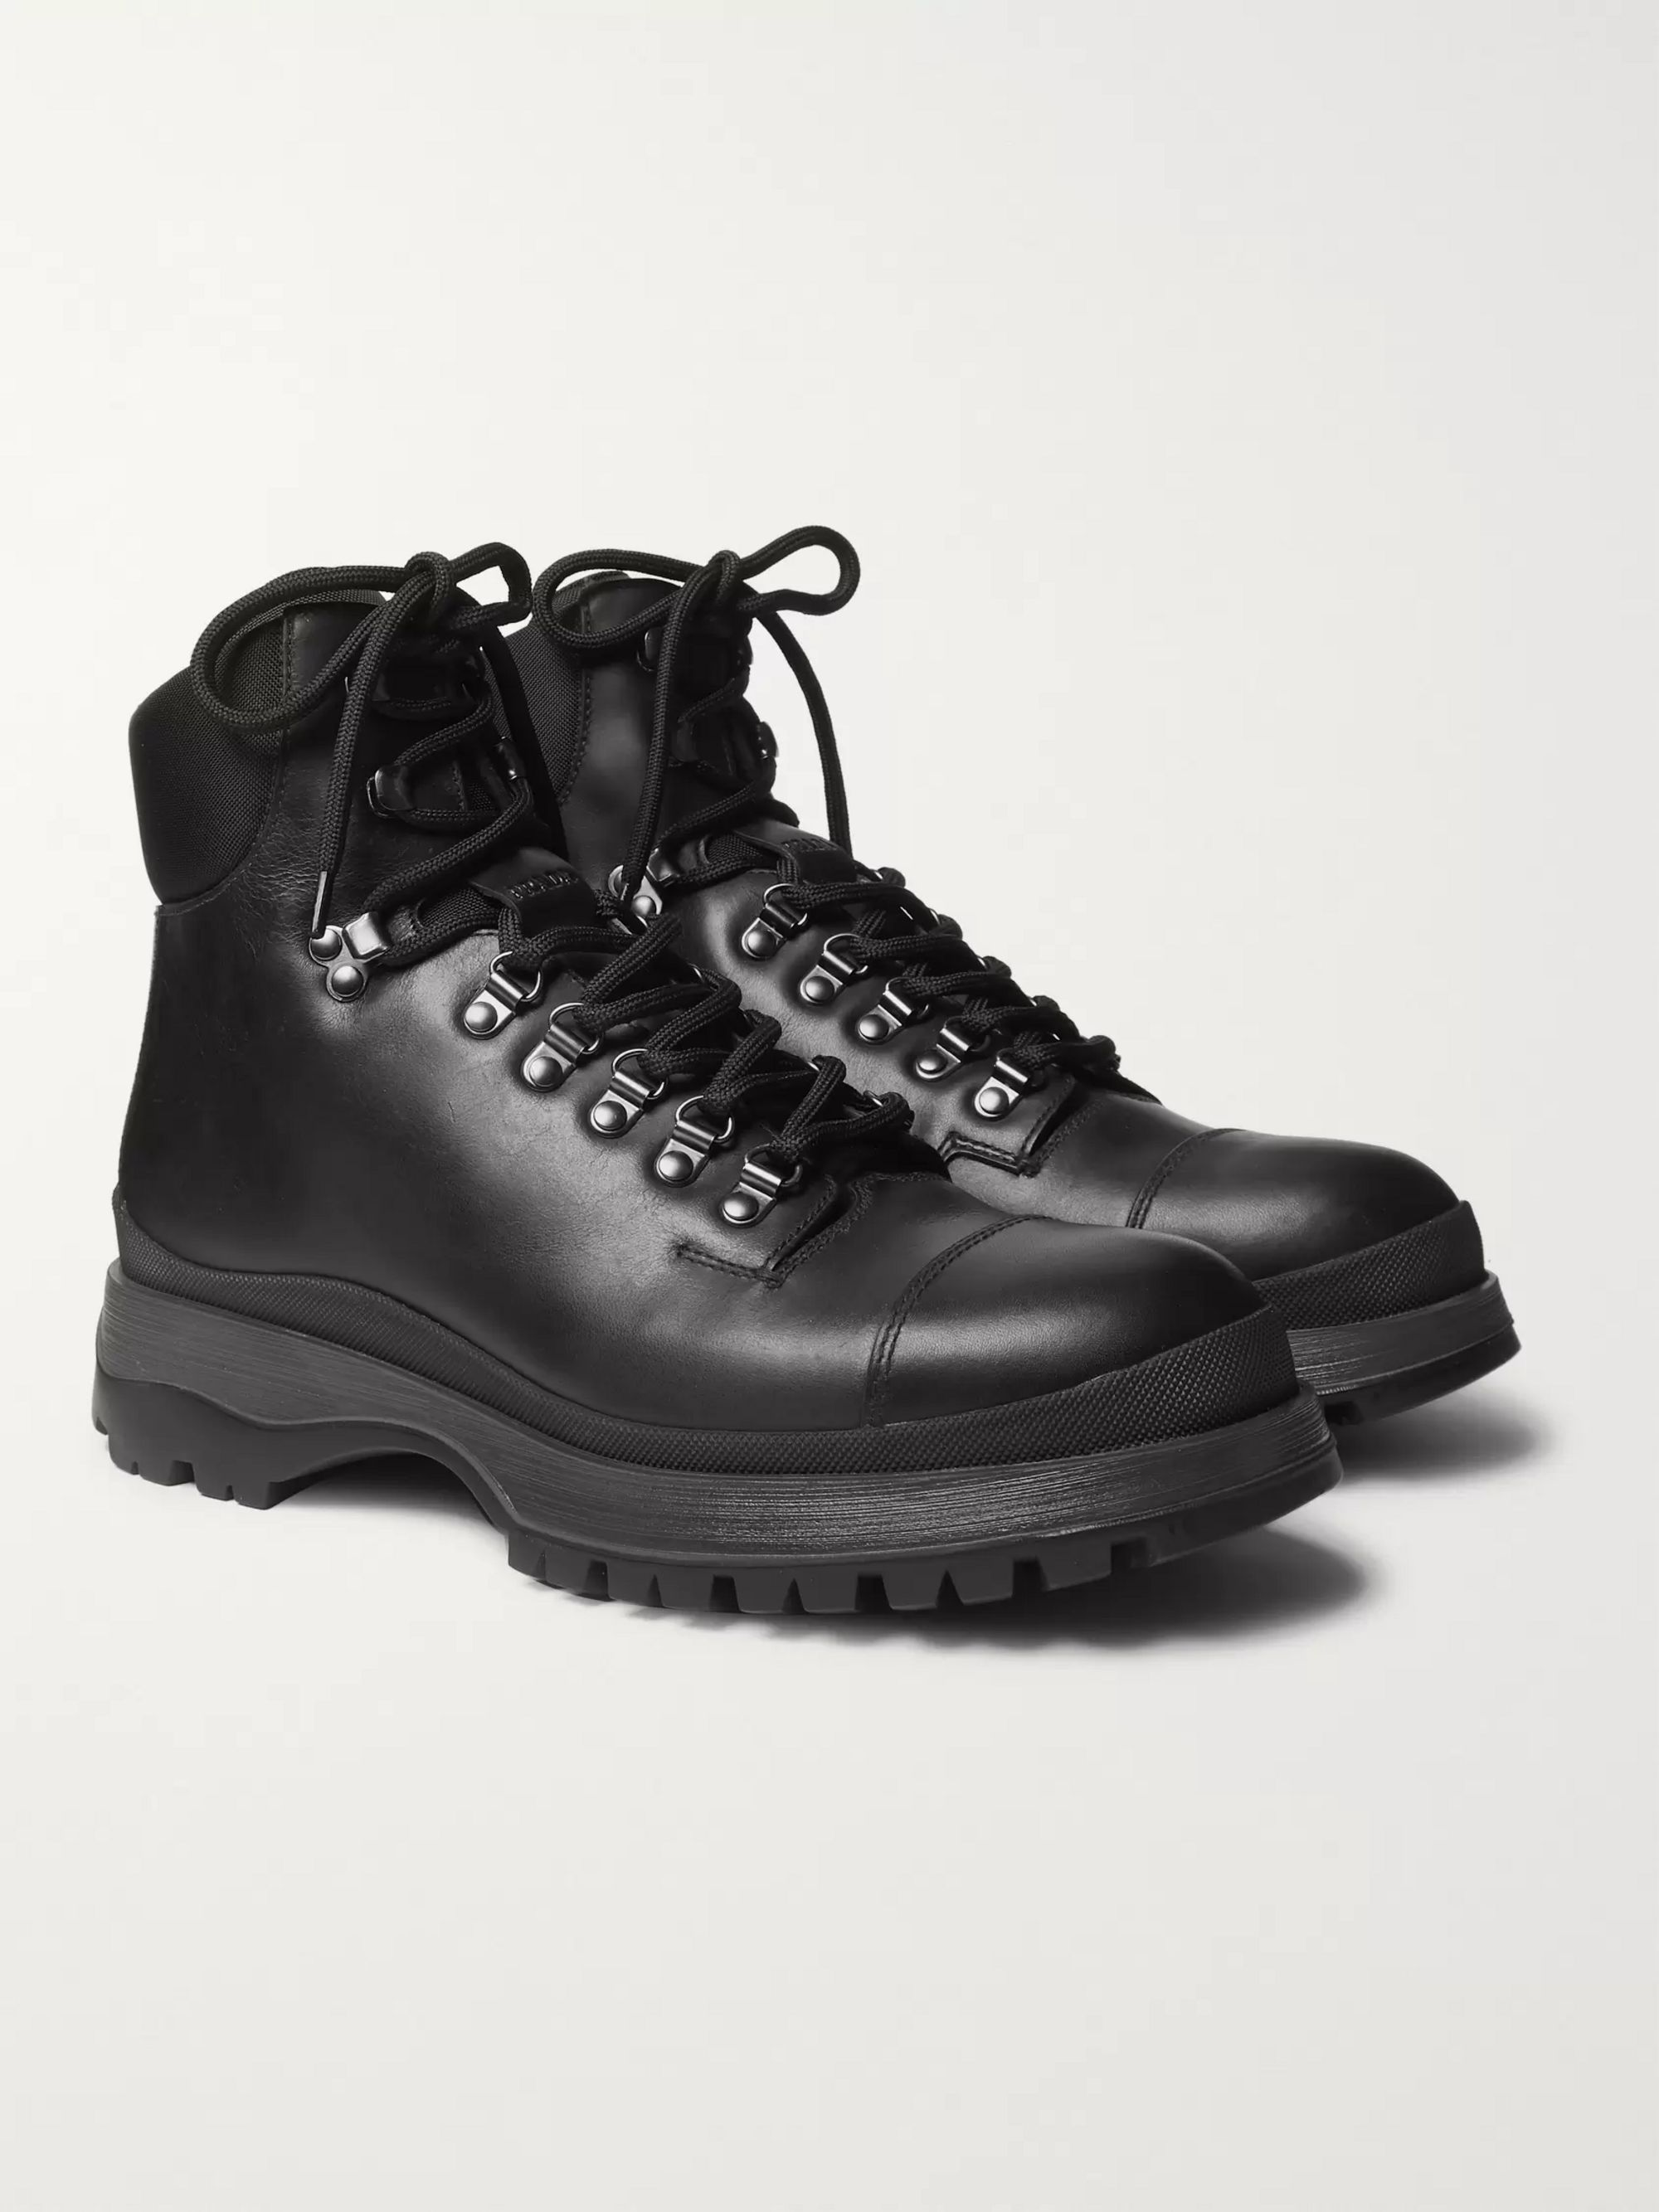 Prada Leather Hiking Boots